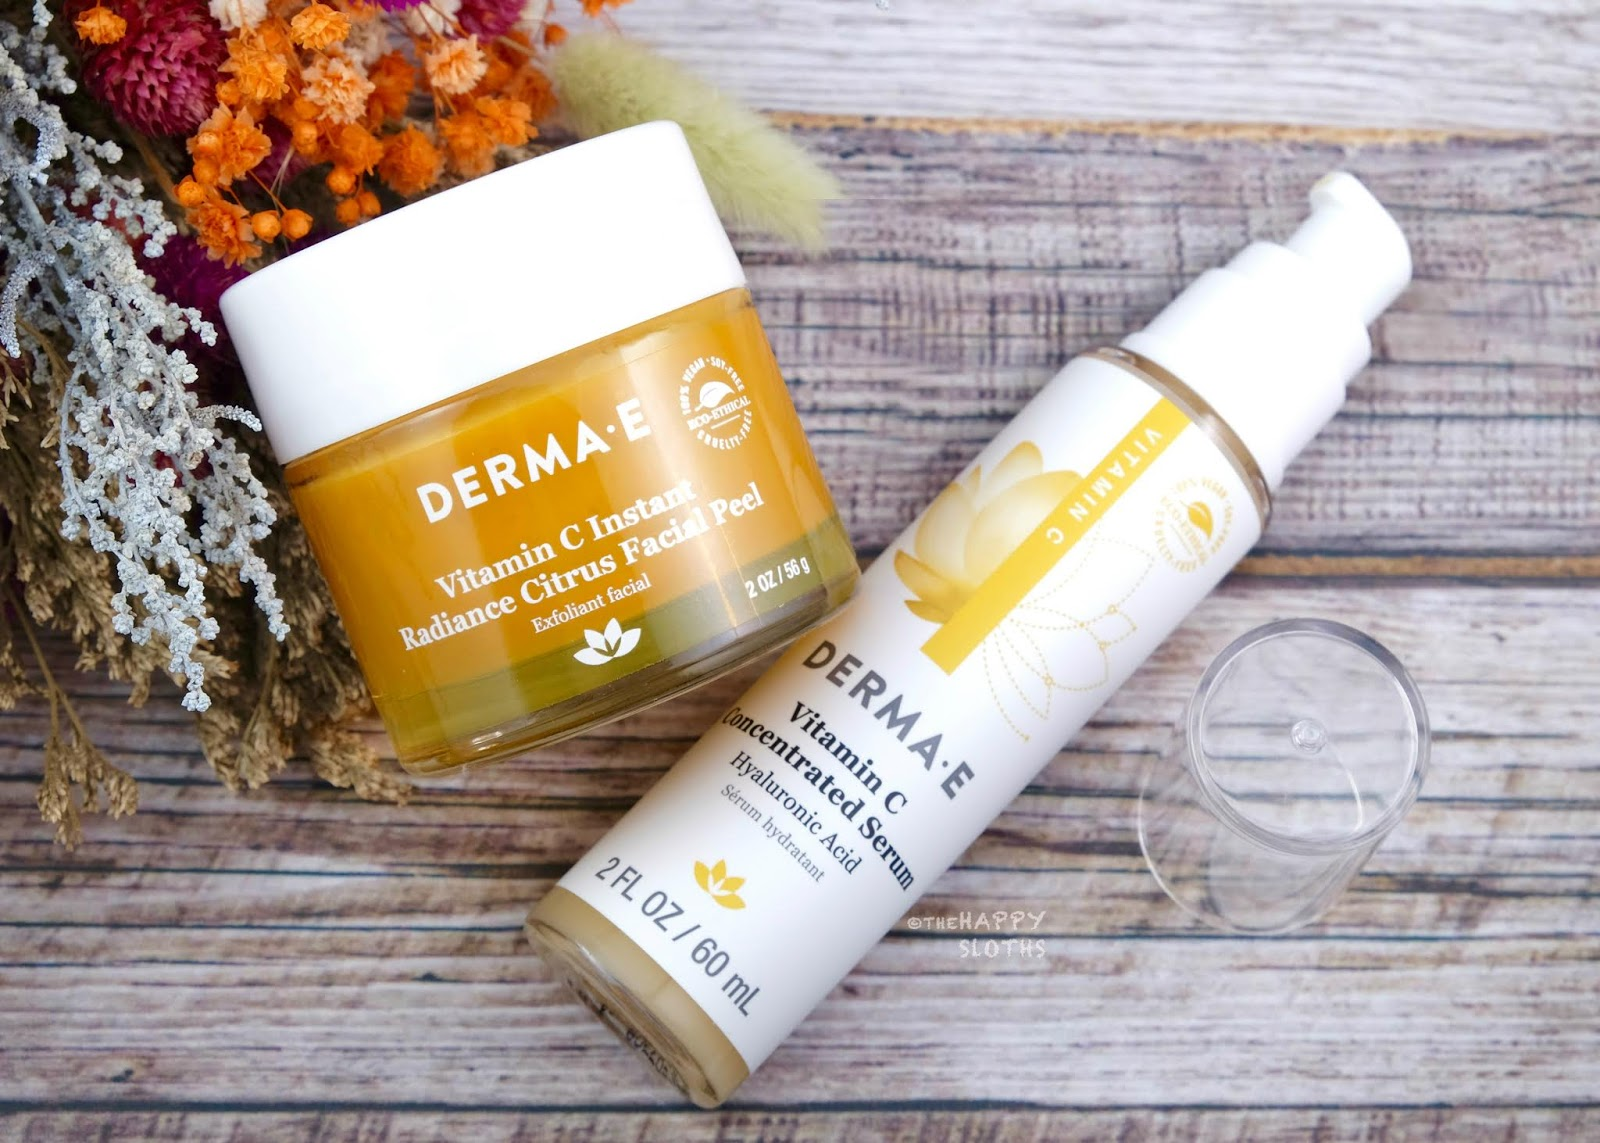 Derma E | Vitamin C Instant Radiance Citrus Facial Peel & Vitamin C Concentrated Serum: Review